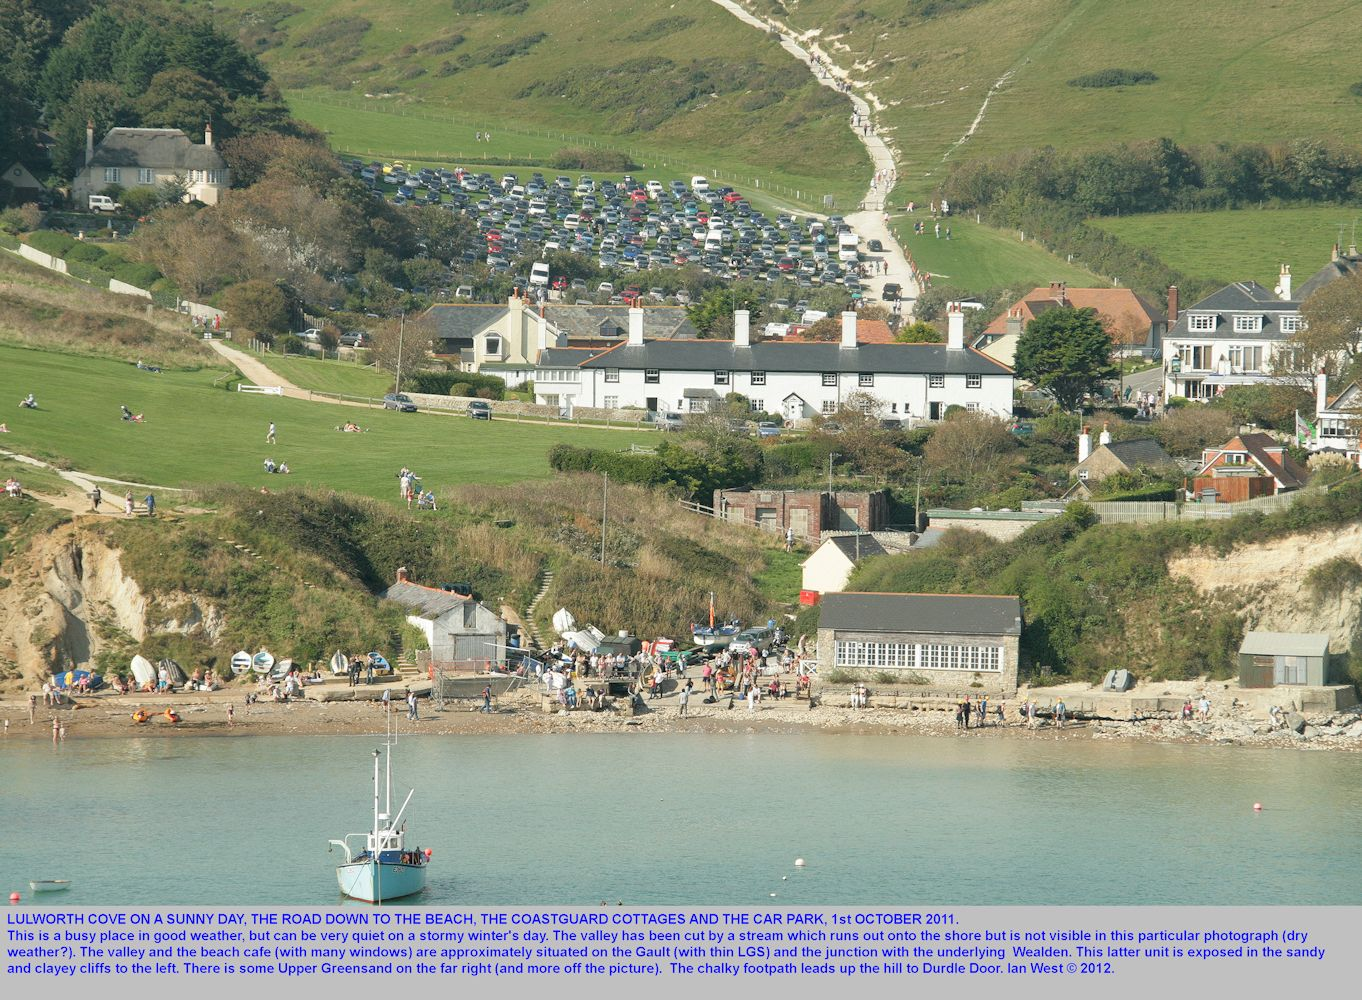 The beach where the road comes down to Lulworth Cove, Dorset, from the car park, as seen on 1st October 2011